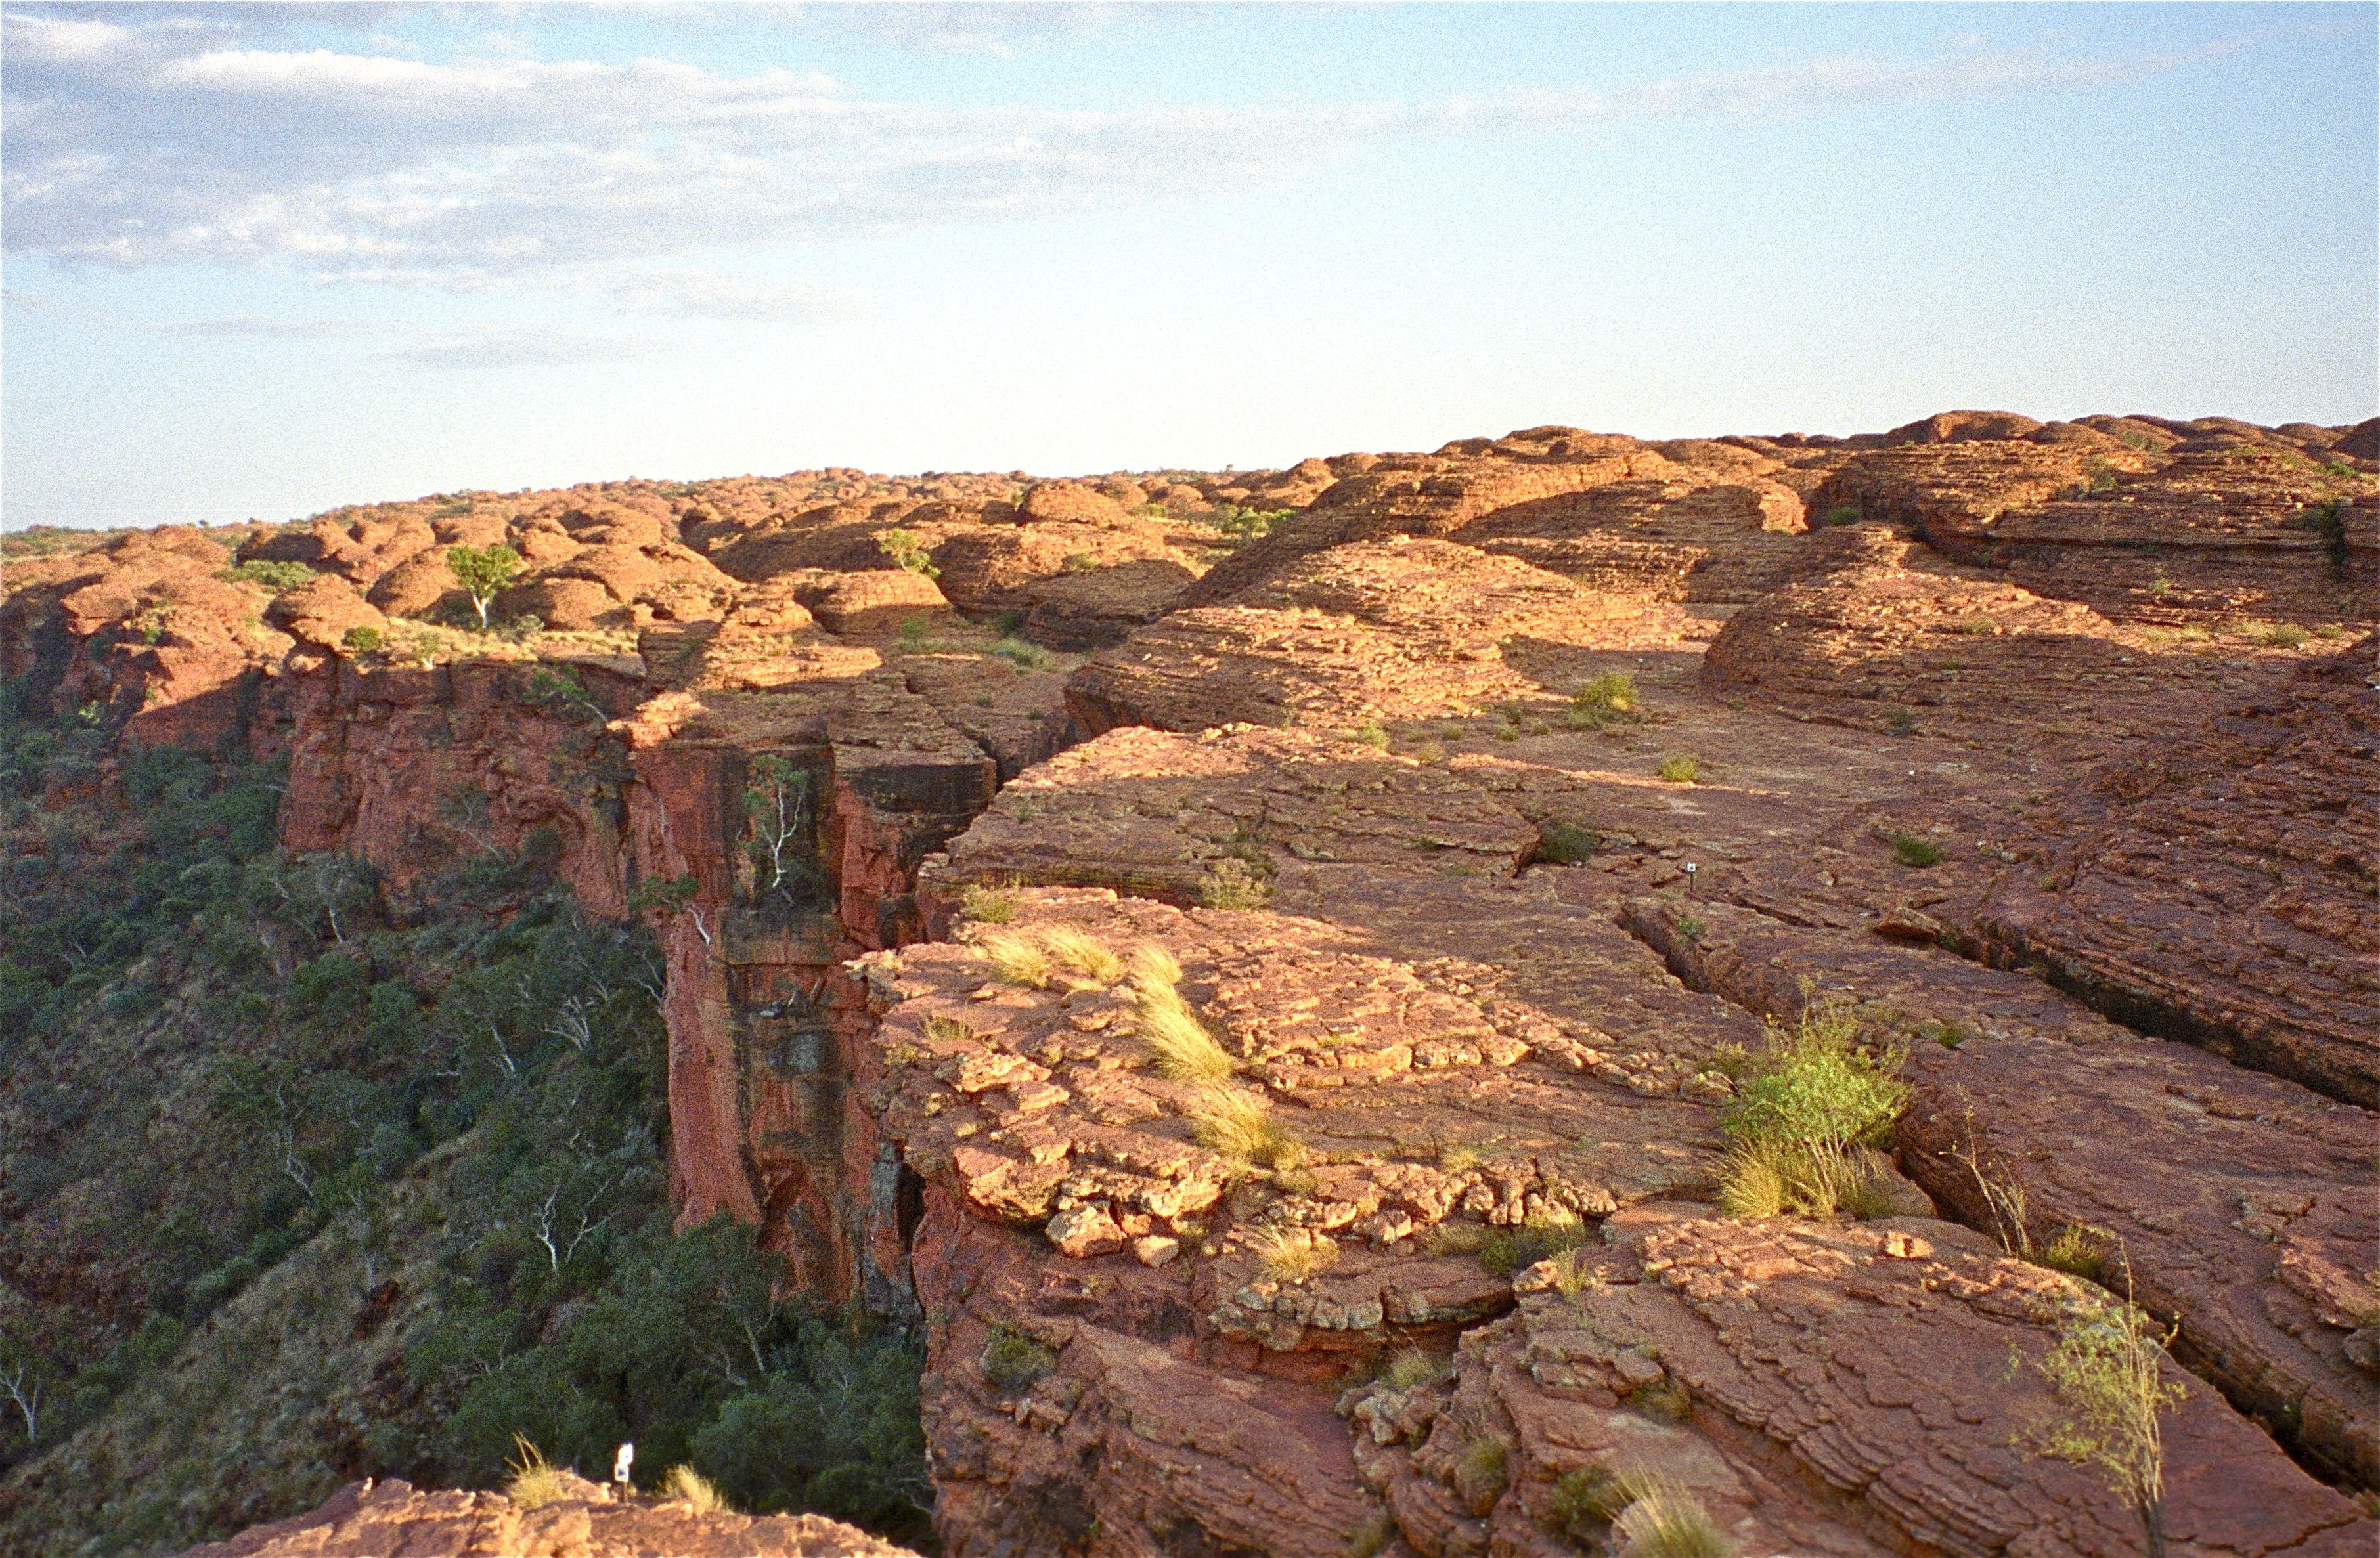 Watarrka National Park National Park In Northern